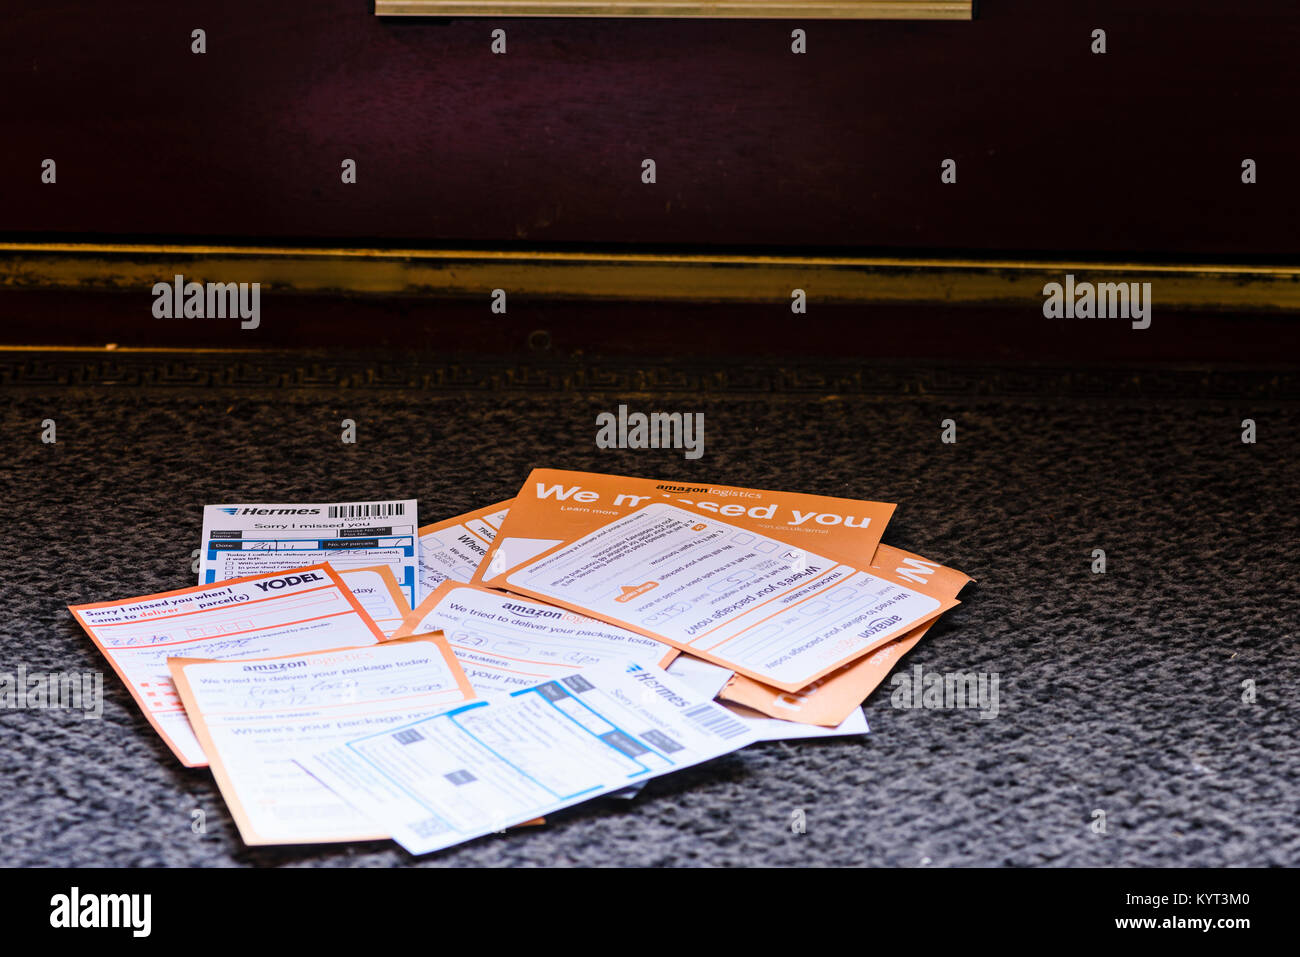 amazon prime delivery photos & amazon prime delivery images - alamy